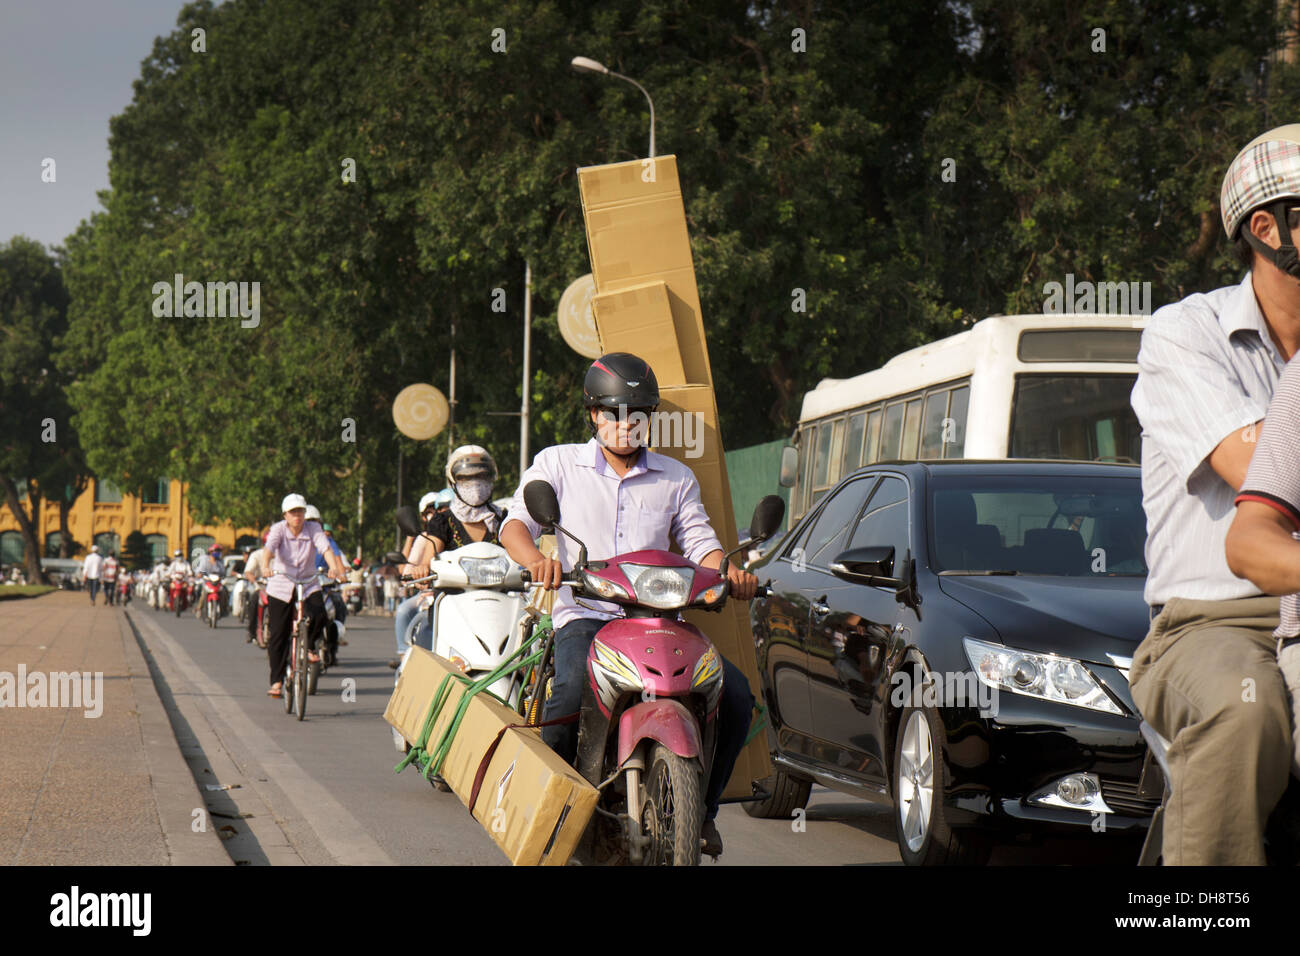 Shot of man on scooter or moped carrying various oversize packages. - Stock Image